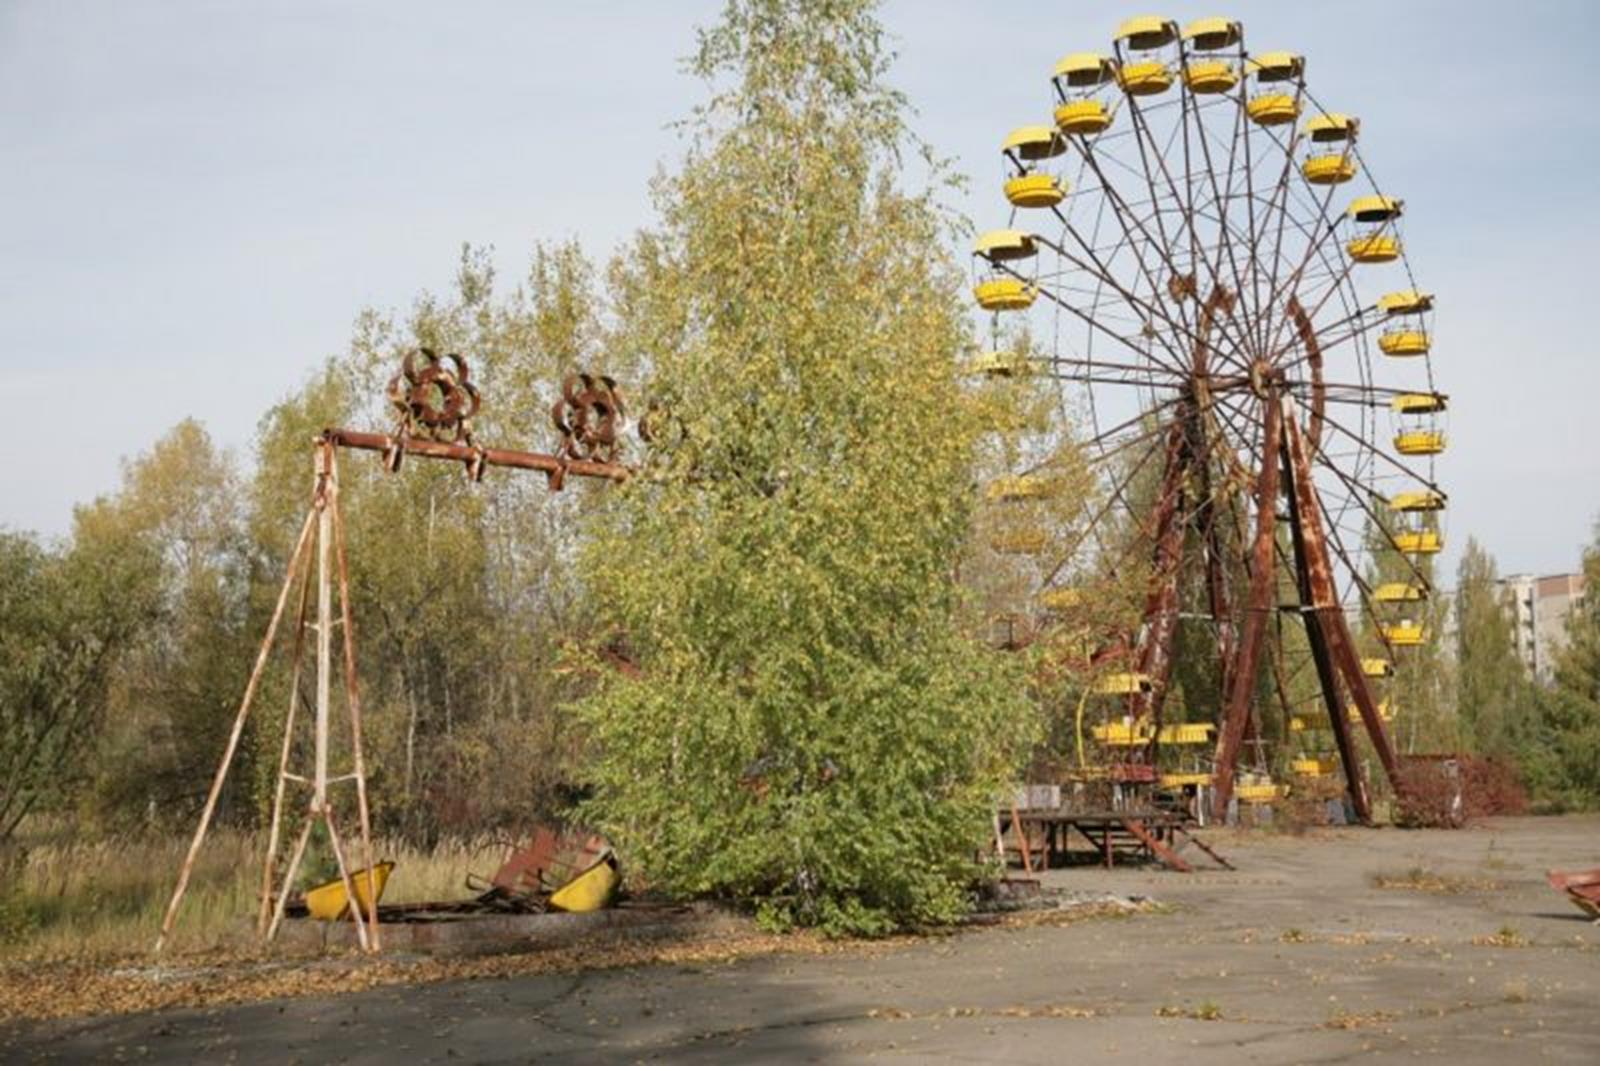 An amusement park in Pripyat that was going to be opened right after the May 1st festivities of 1986. Because of the Chernobyl accident the ferris wheel, swings and bumper cars were never used.